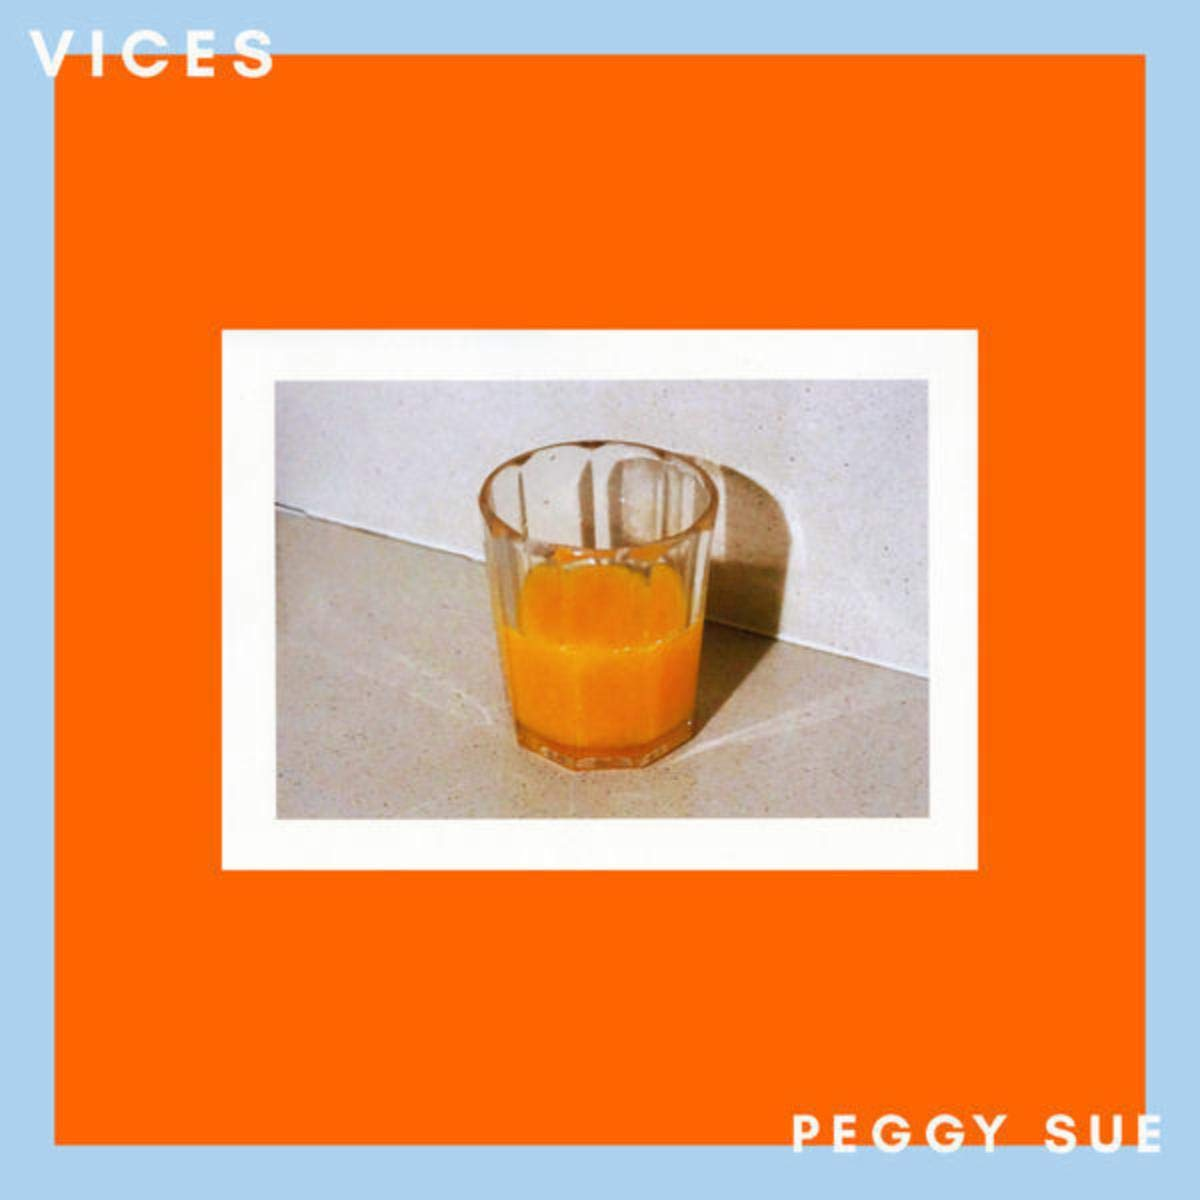 Peggy Sue – Vices (2020) [FLAC]